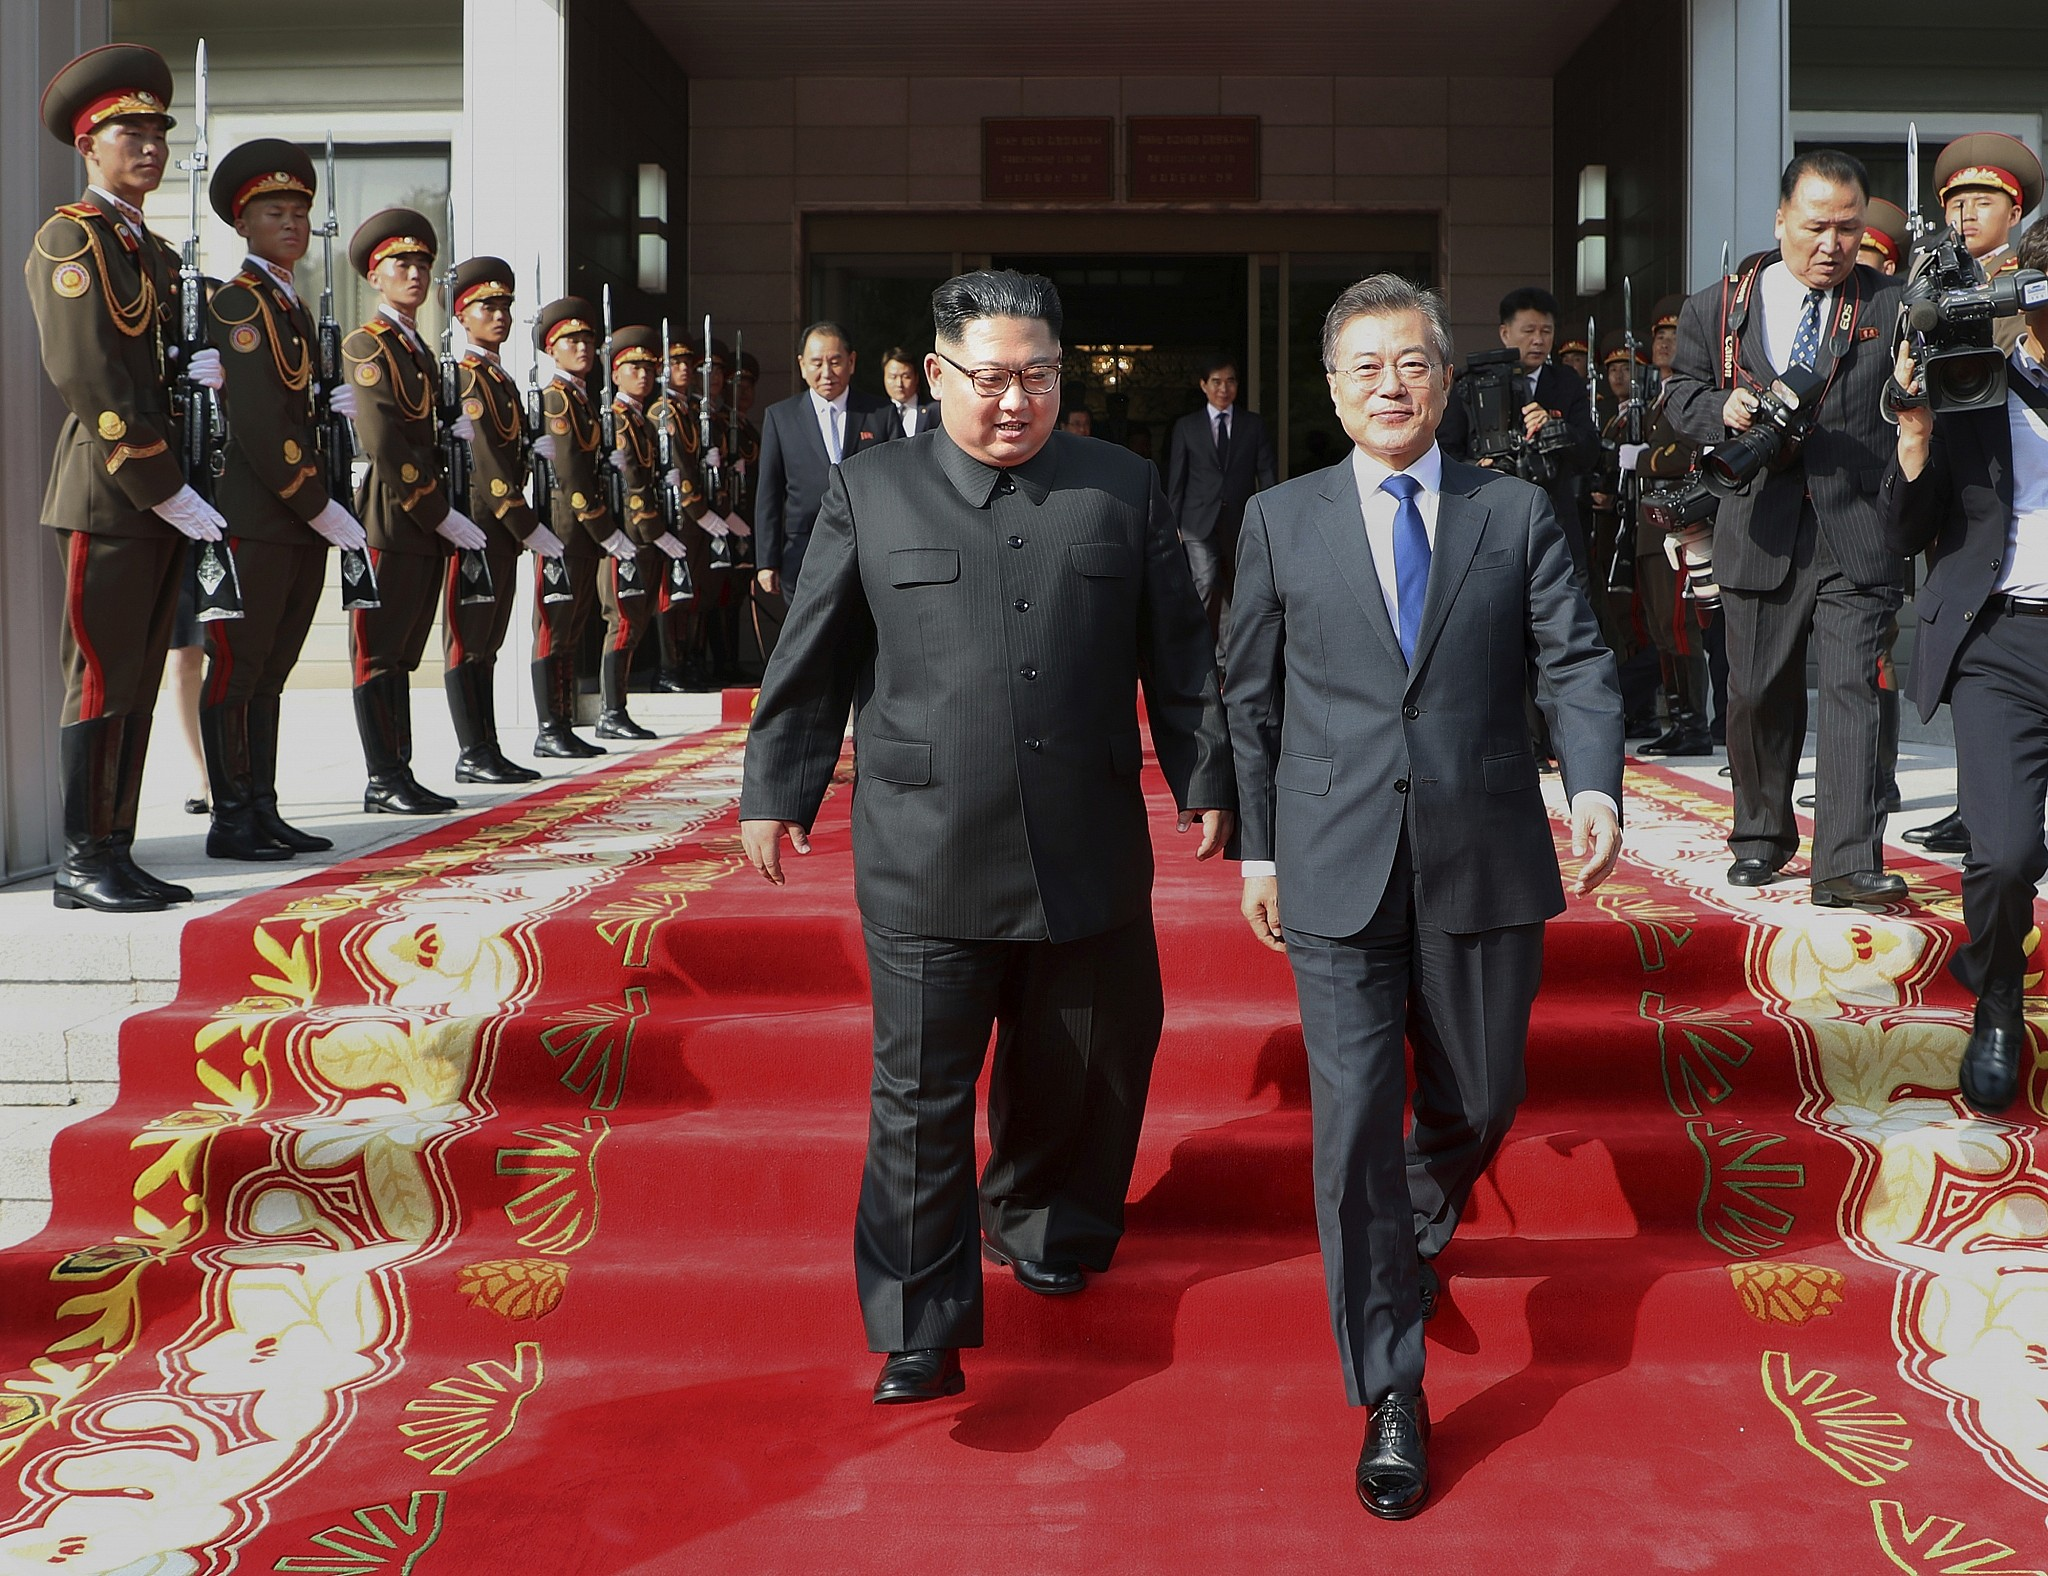 Kim remains skeptical about Washington's security pledge upon de-nuclearization - Moon